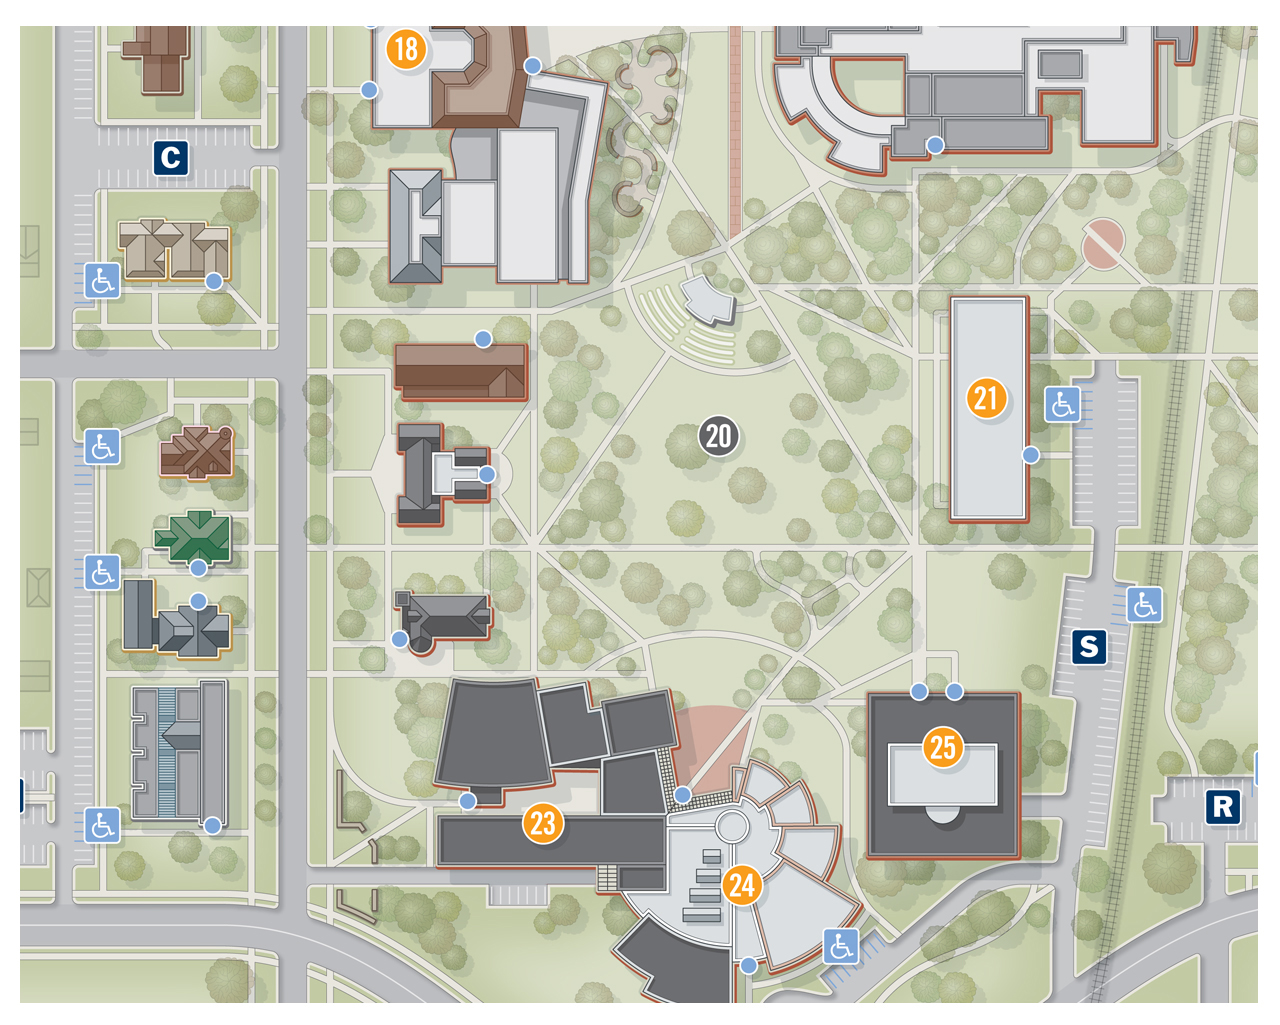 grinnell college campus map City College Campus Map Illustration Design grinnell college campus map